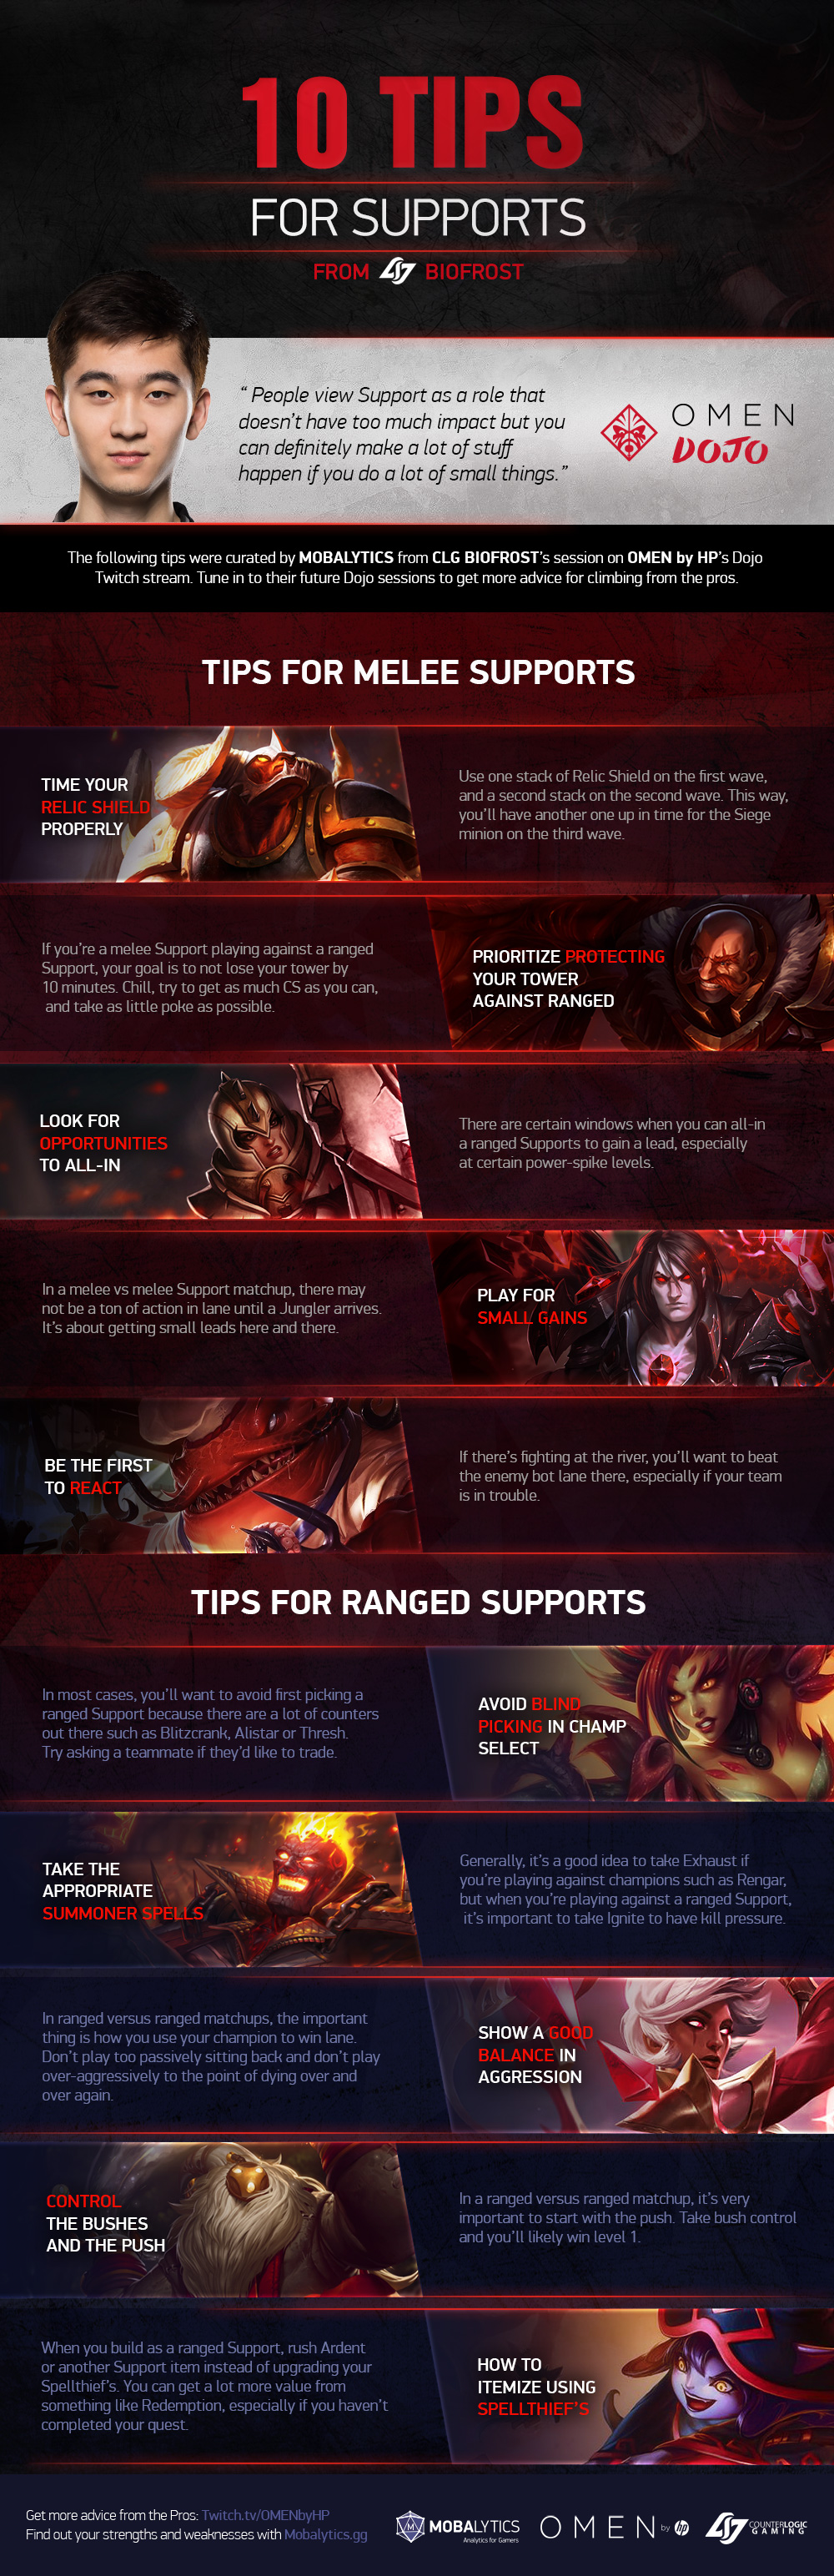 10 Tips for Supports from CLG Biofrost's OMEN Dojo